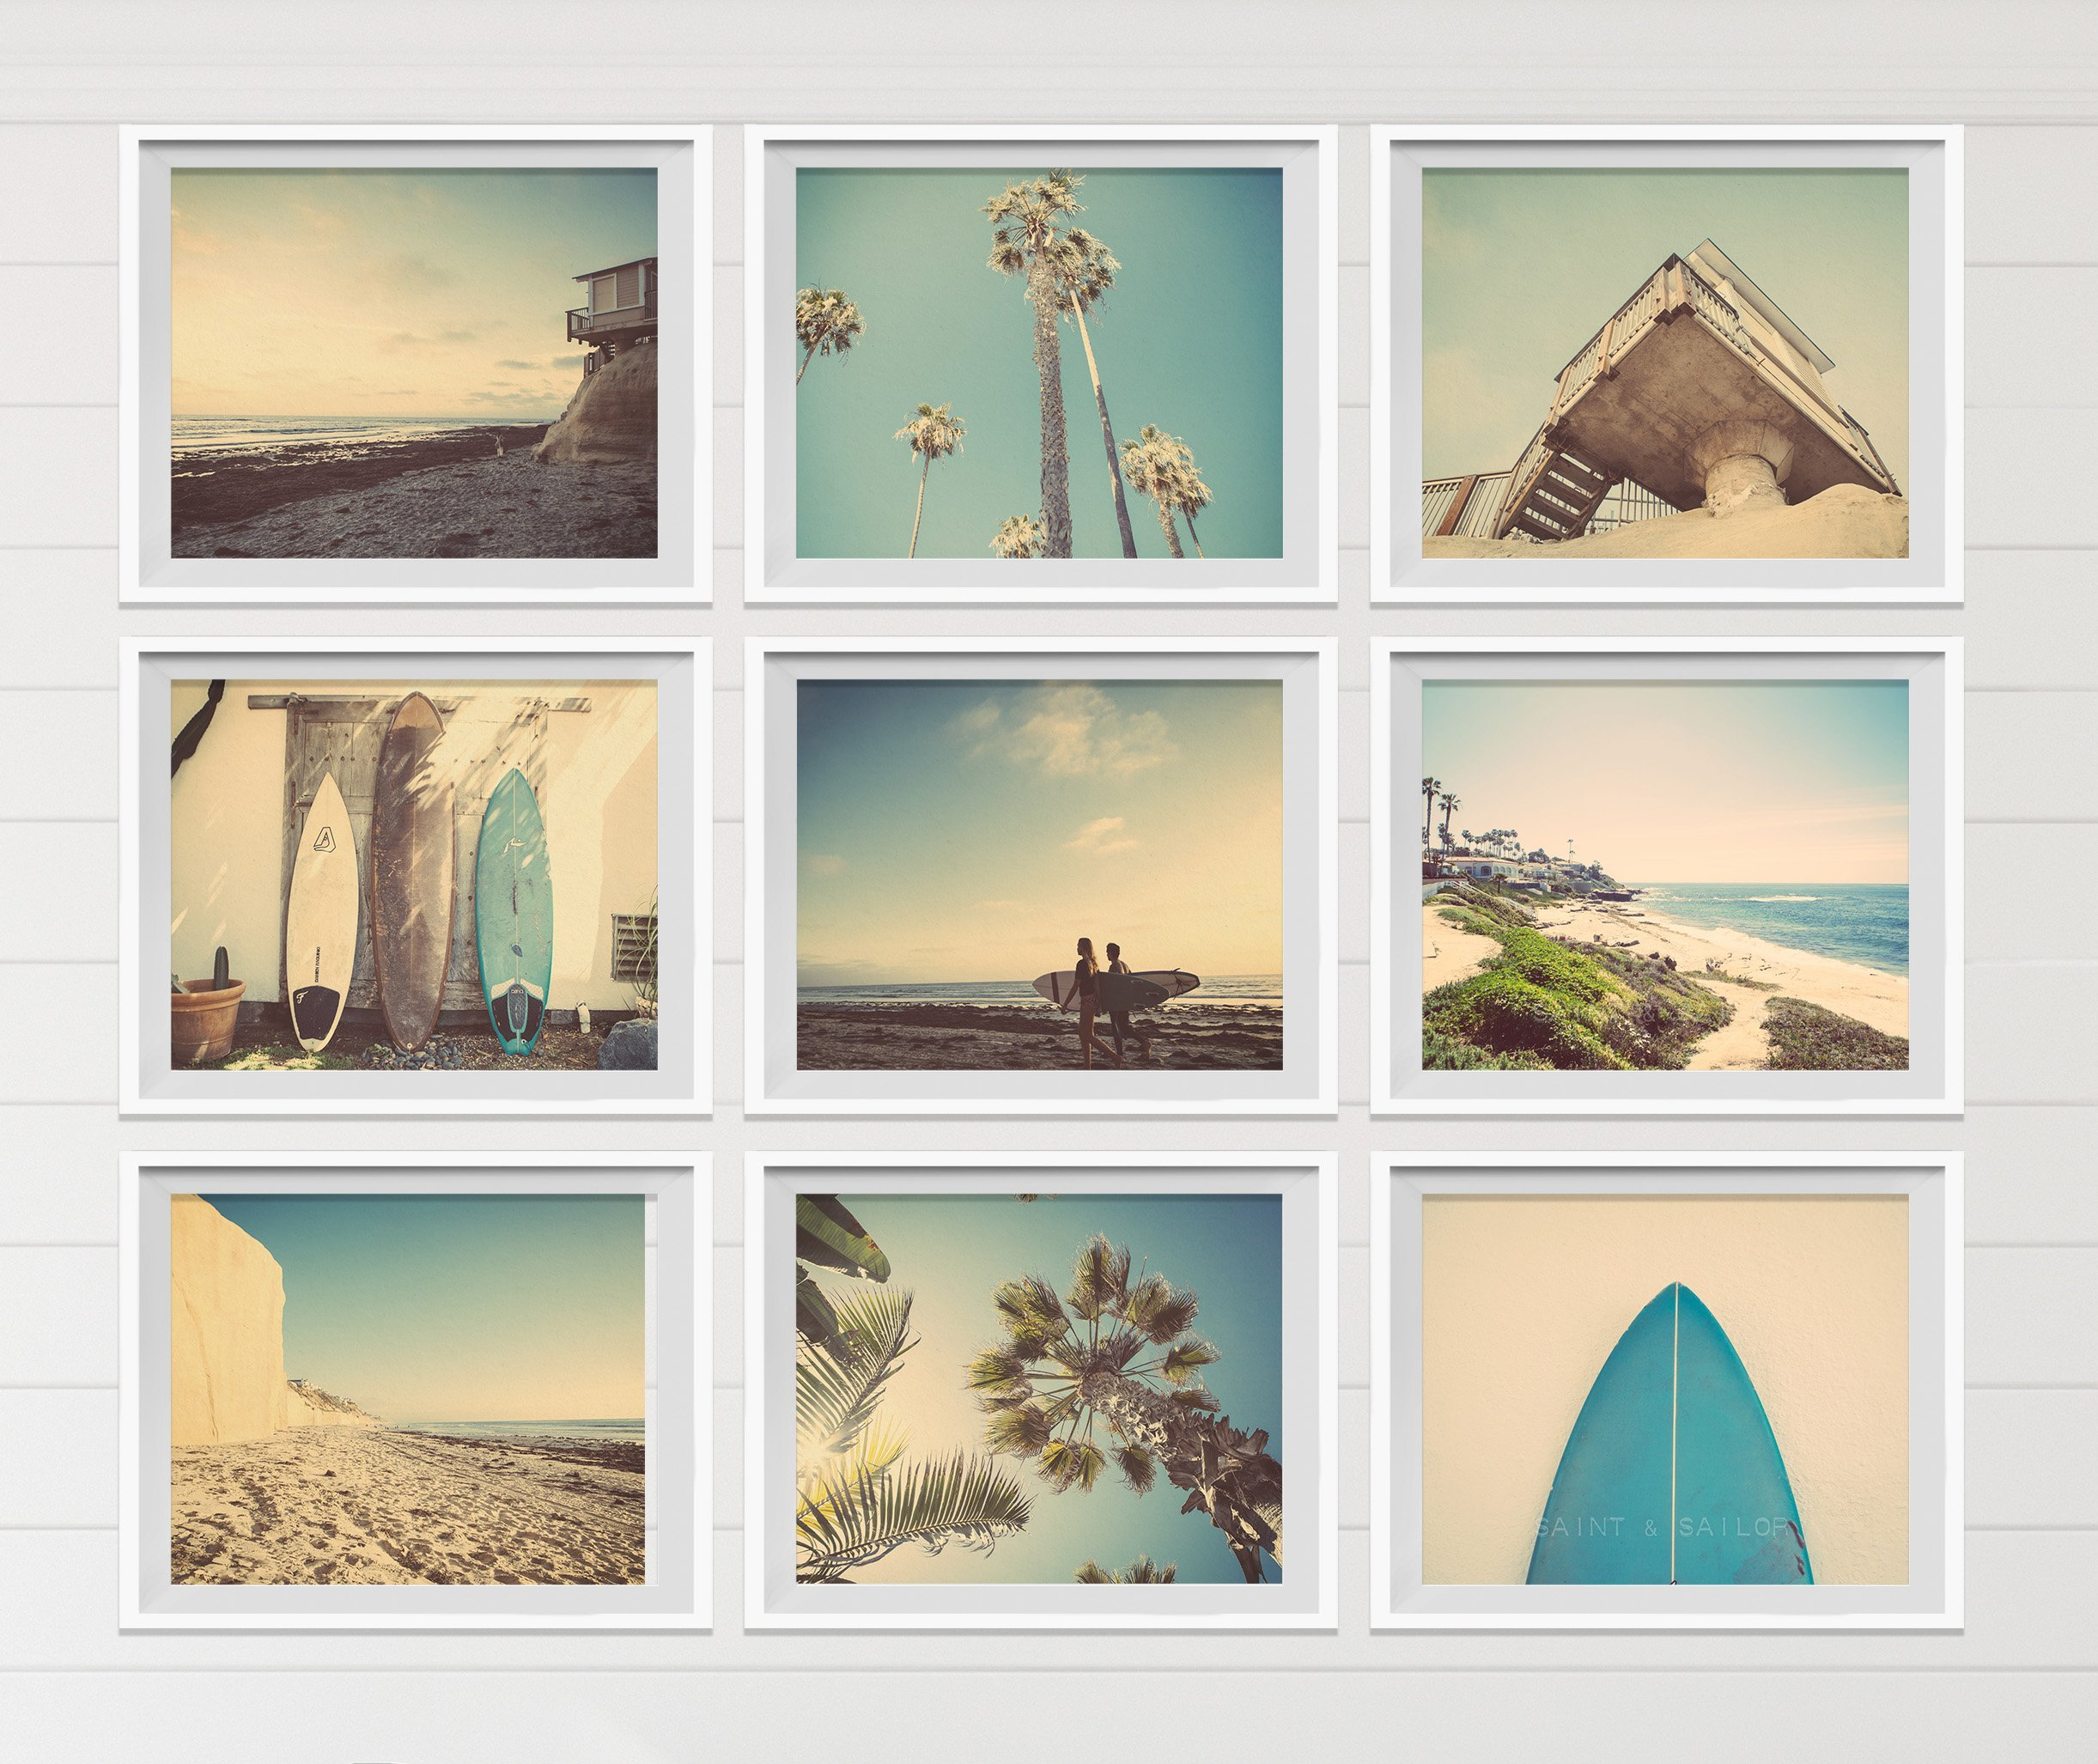 Surf Beach Themed Fine Art Photography Set of 9 on Photo Paper Prints, beach photos, , yellow, turquoise, sunset, retro, vintage surf home decor, beach wall art by Saint and Sailor Studios